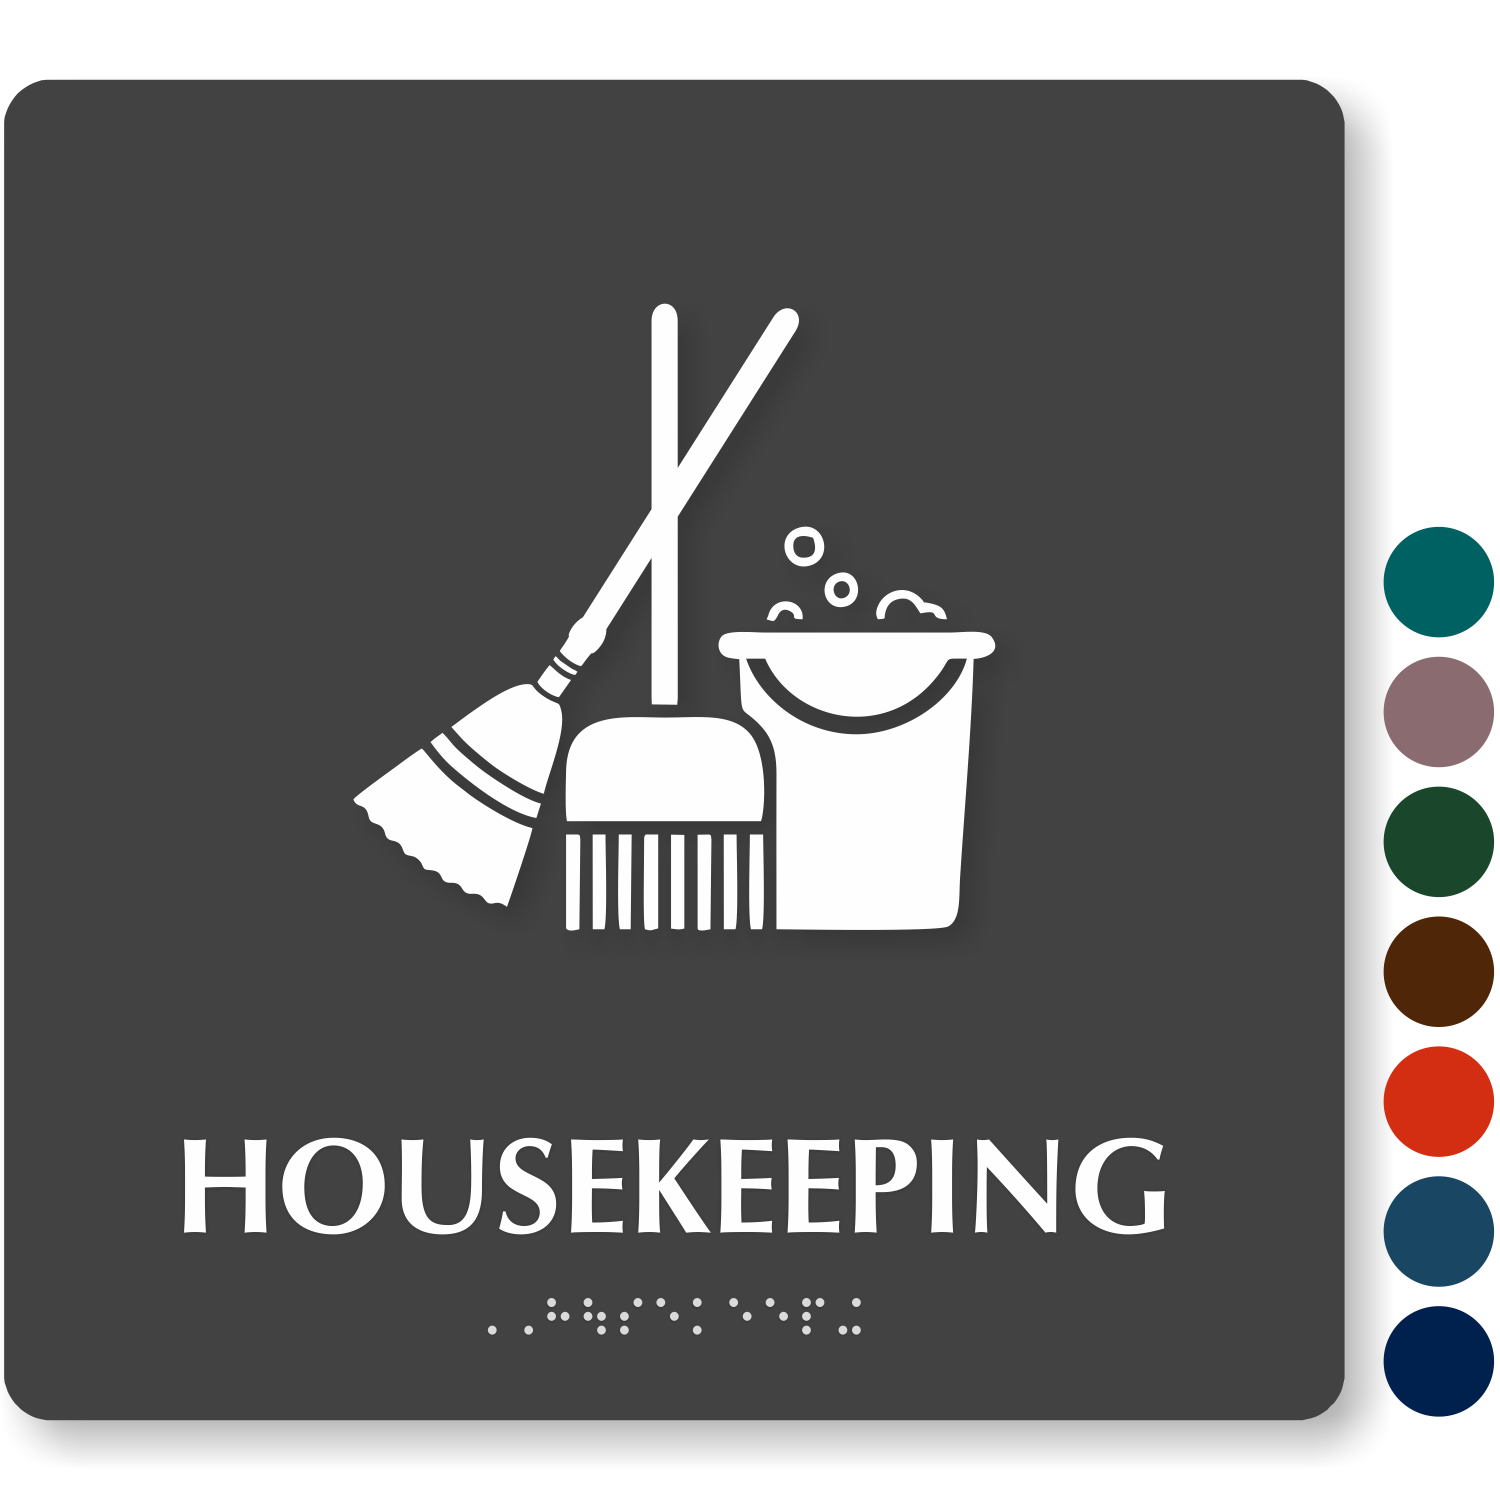 Hospital Housekeeping Signs on Office Cleaning Clip Art Free